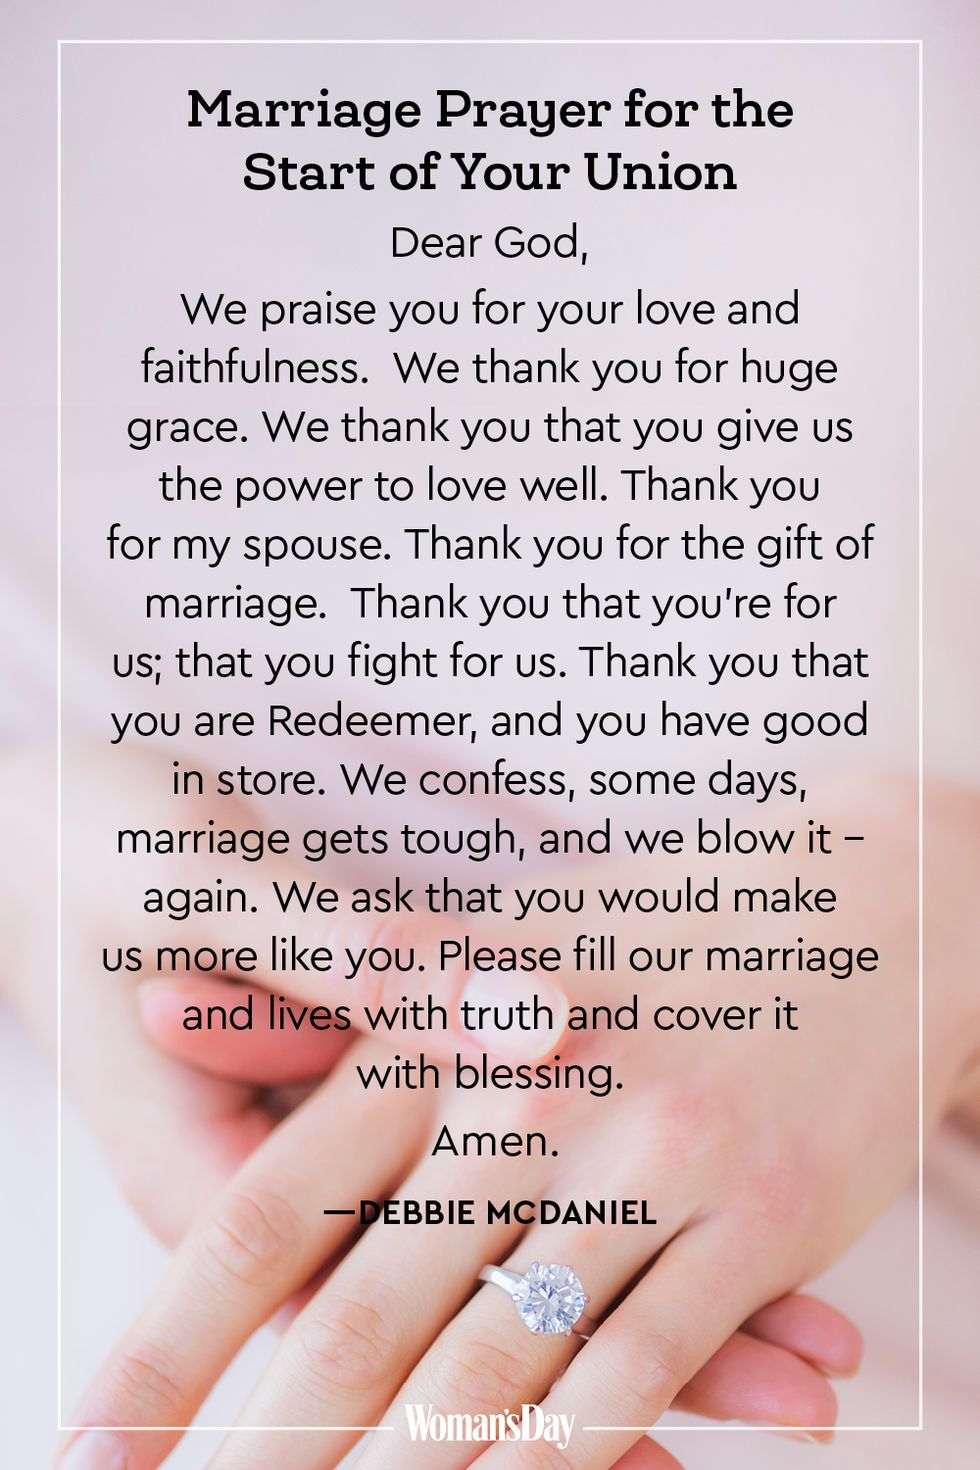 21 Marriage Prayers for Couples Seeking Strength